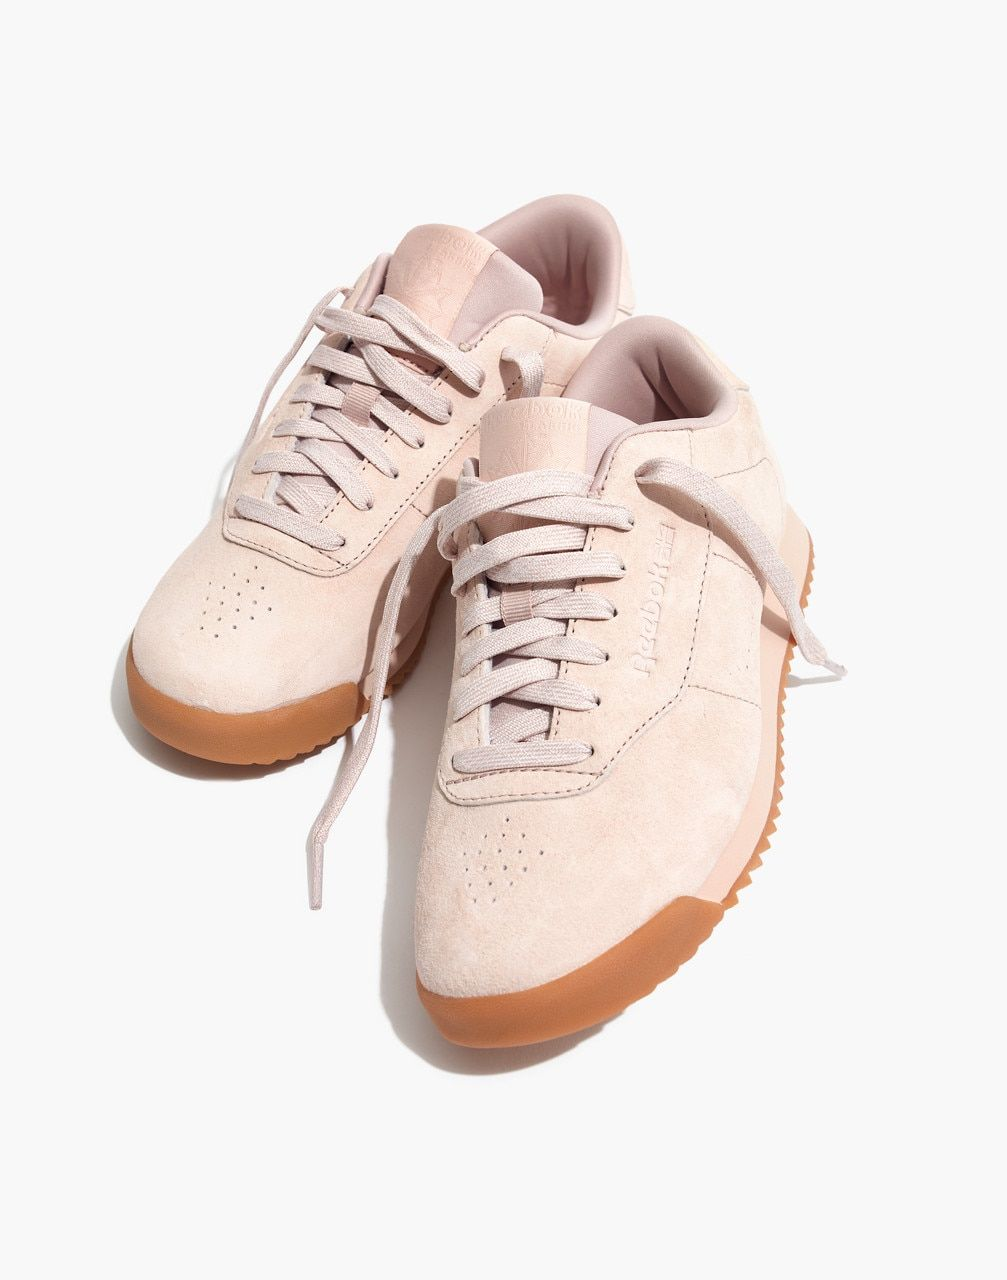 8367a38dc9a4a Reebok® Princess Ripple Sneakers in Pink Suede